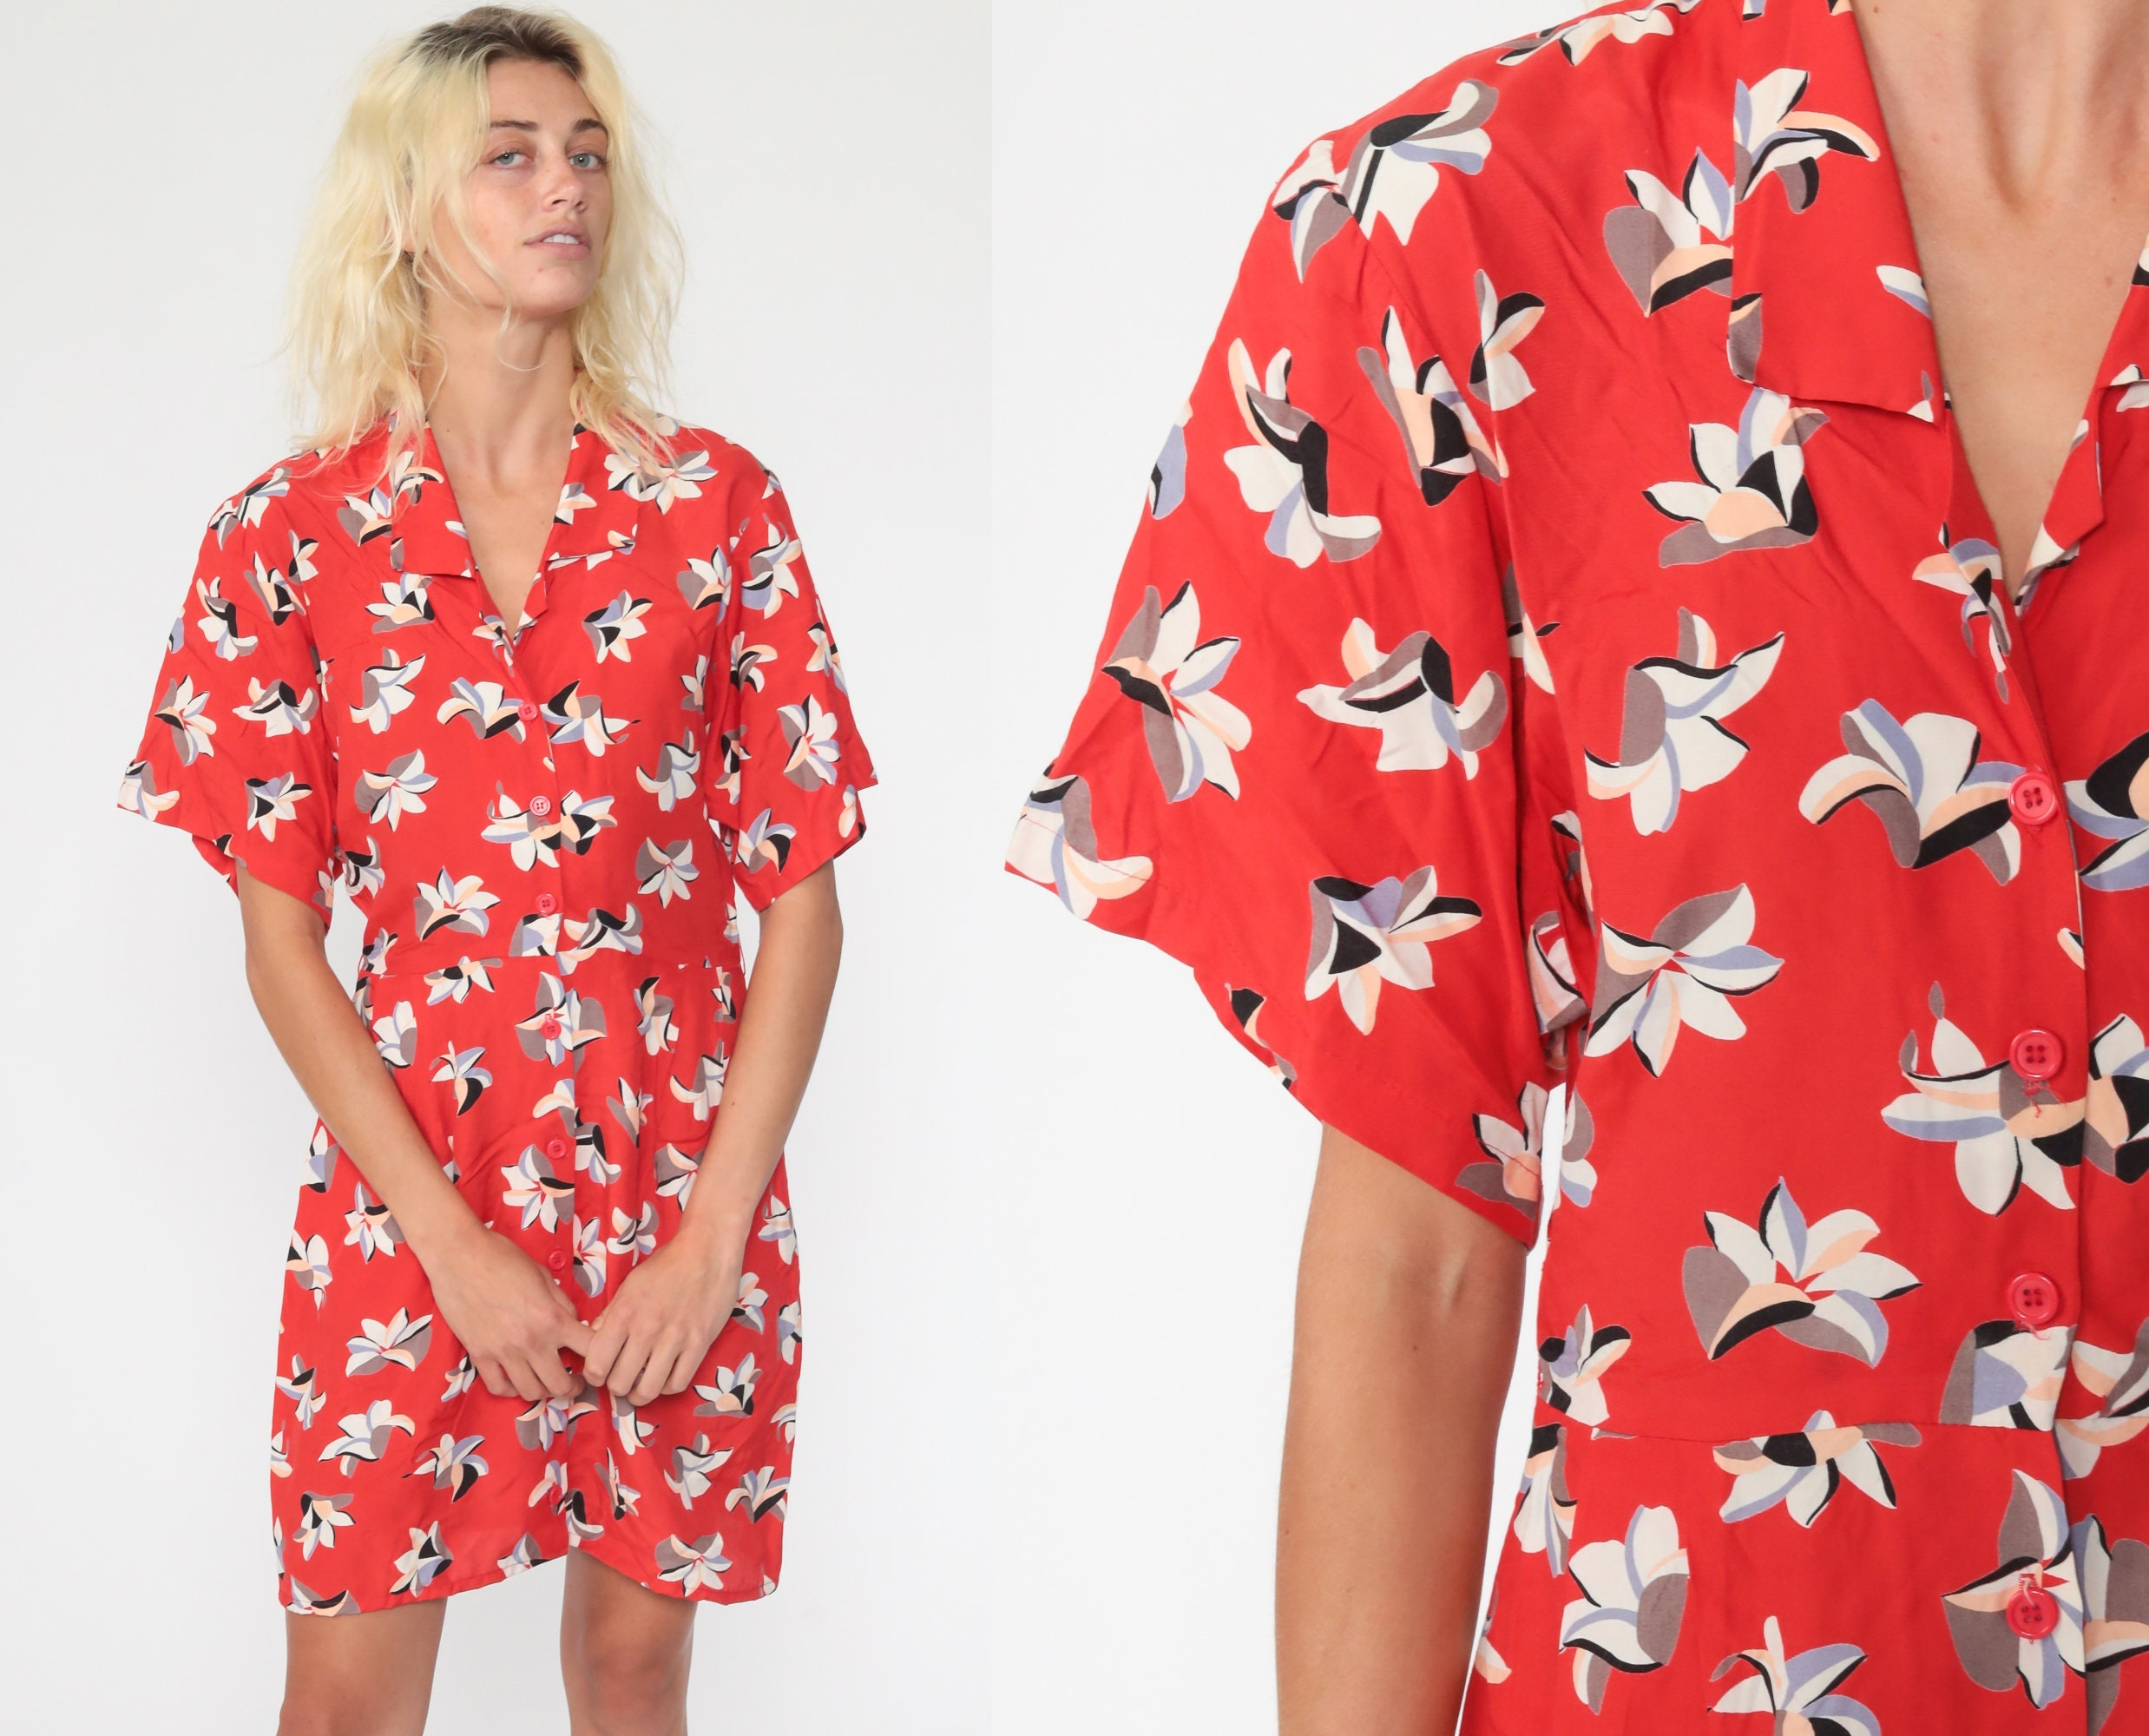 80s Dresses | Casual to Party Dresses Red Floral Dress Kimono Sleeve Mini Button Up 80S Vintage Boho Secretary Shirtwaist High Waisted Short 1980S Collar Small $37.80 AT vintagedancer.com